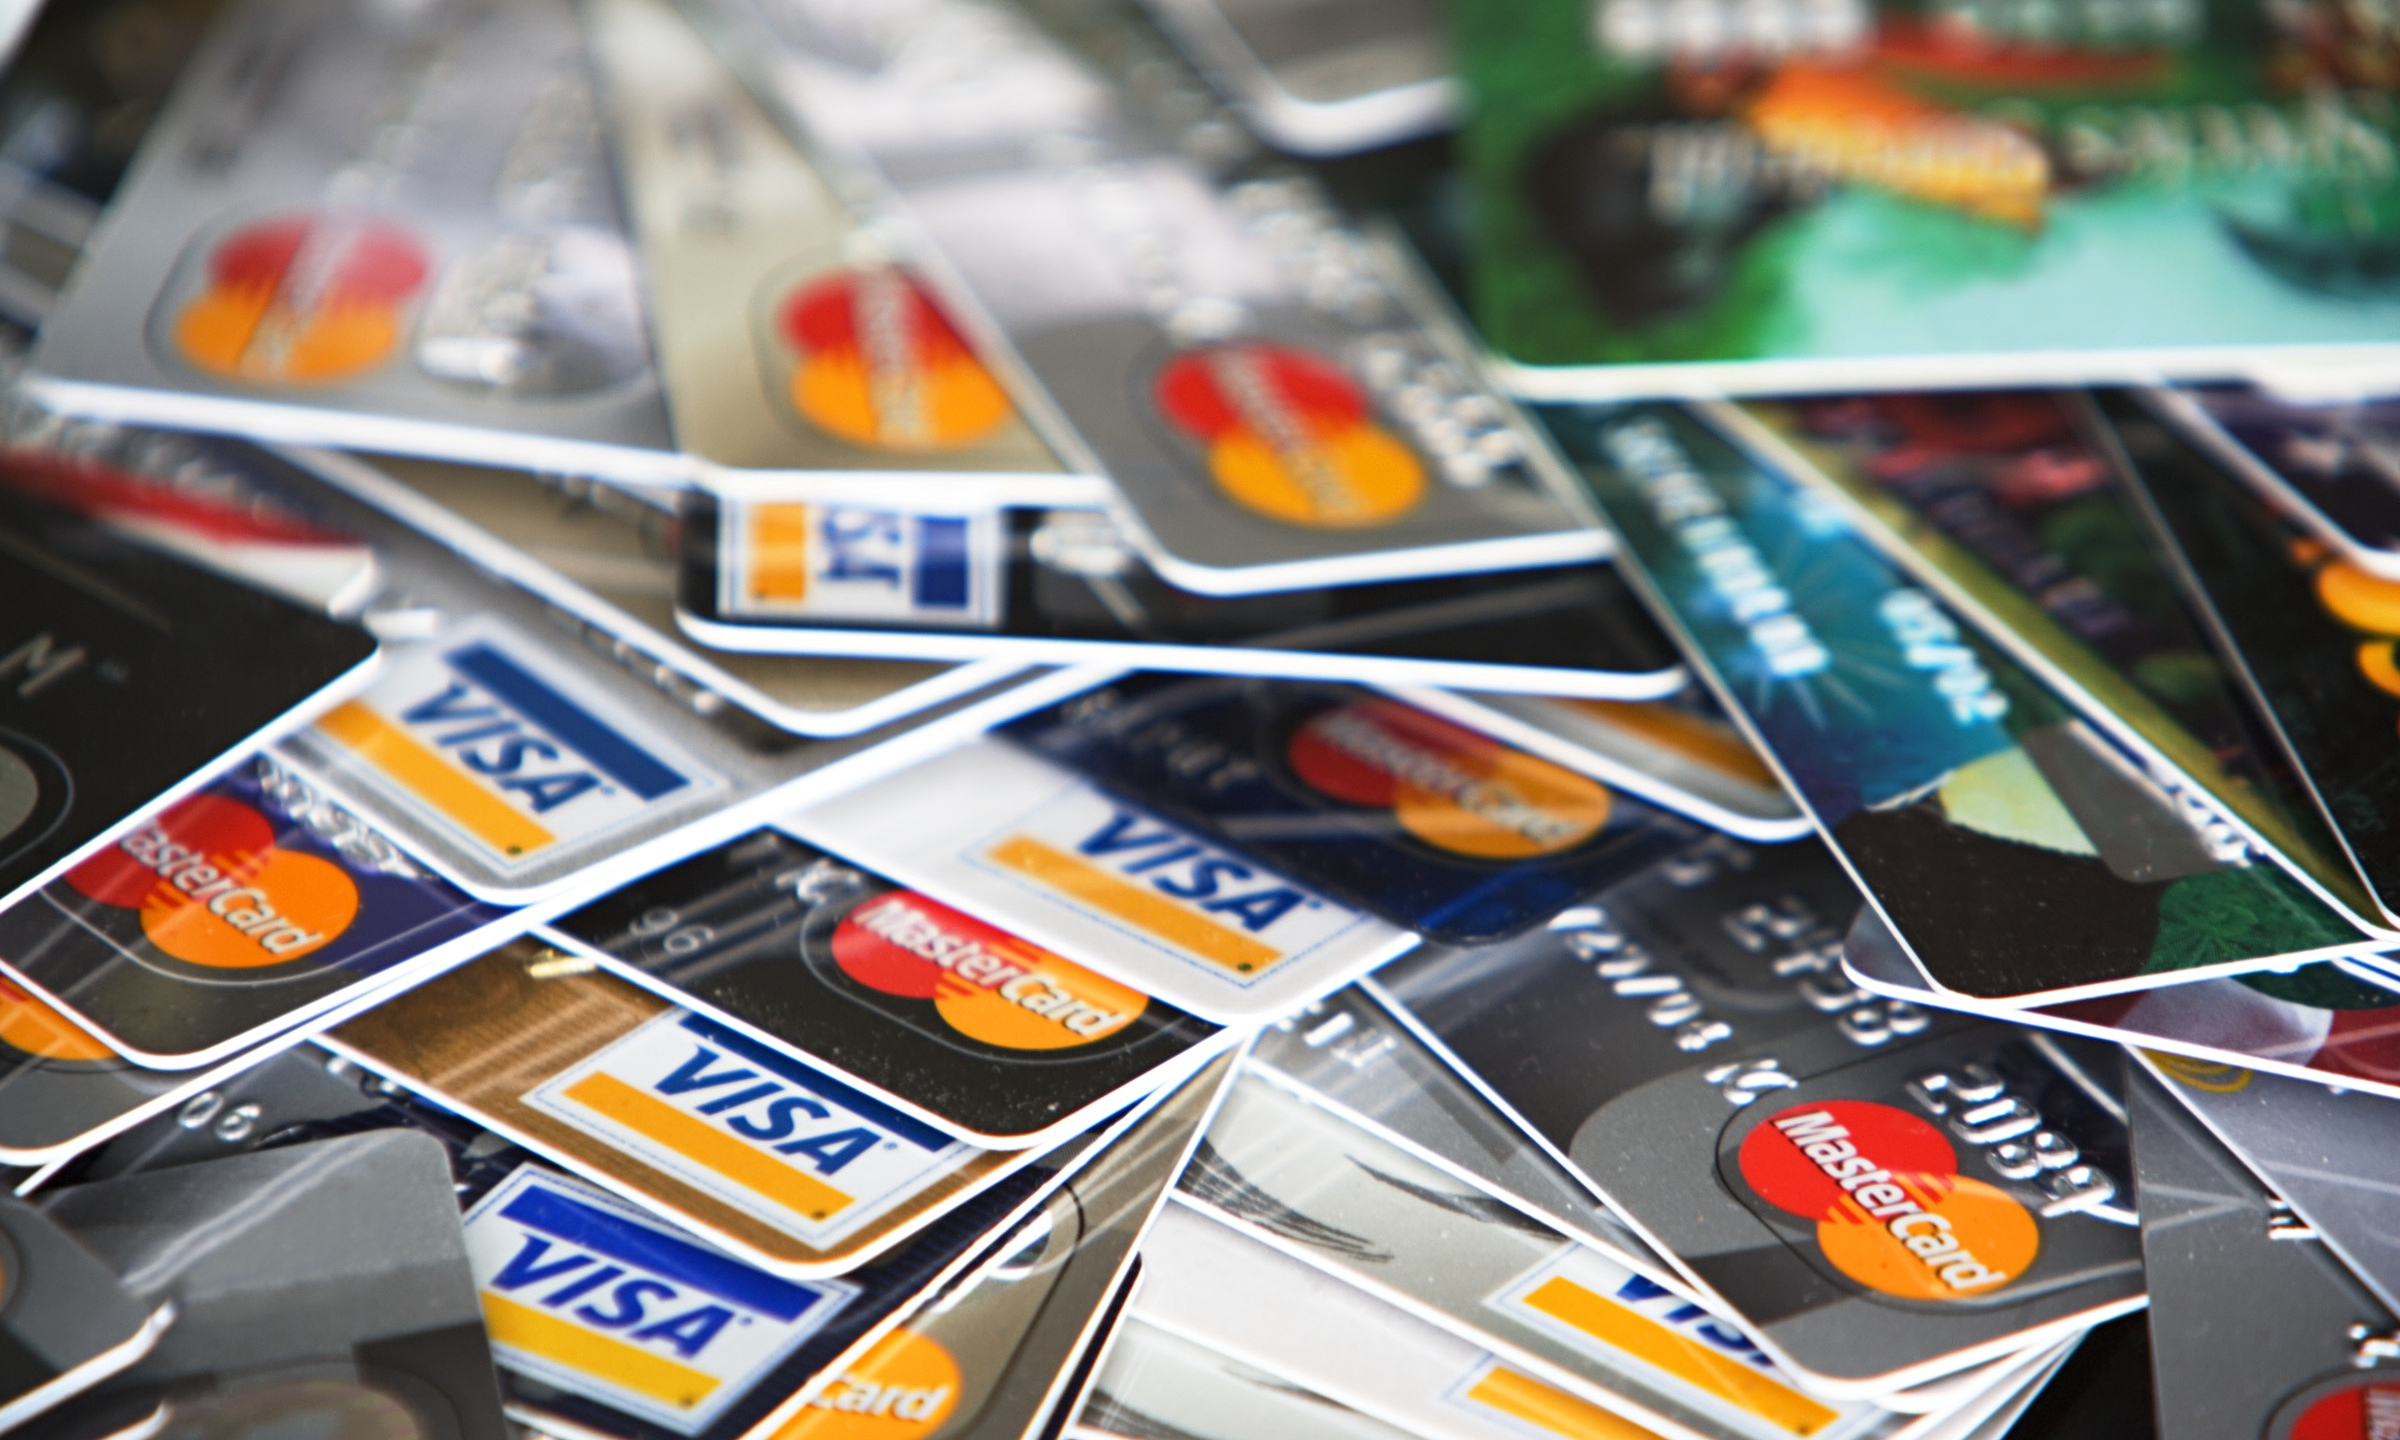 Credit Card Addiction in the U.S. is Larger Than Ever